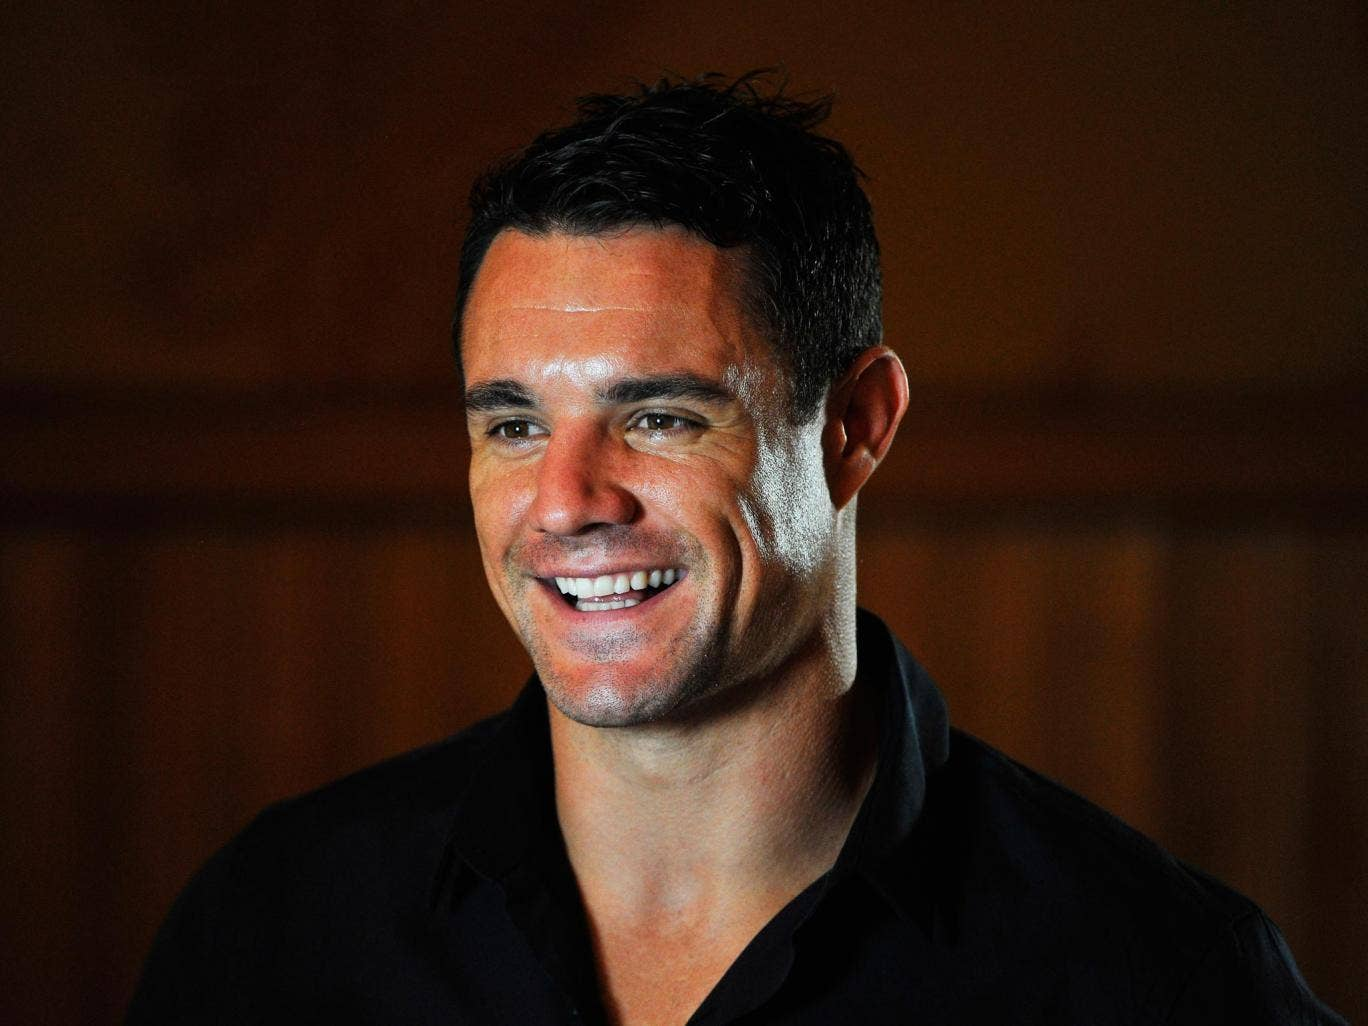 Dan Carter is determined to put his 2011 World Cup final heartache behind him by succeeding in 2015